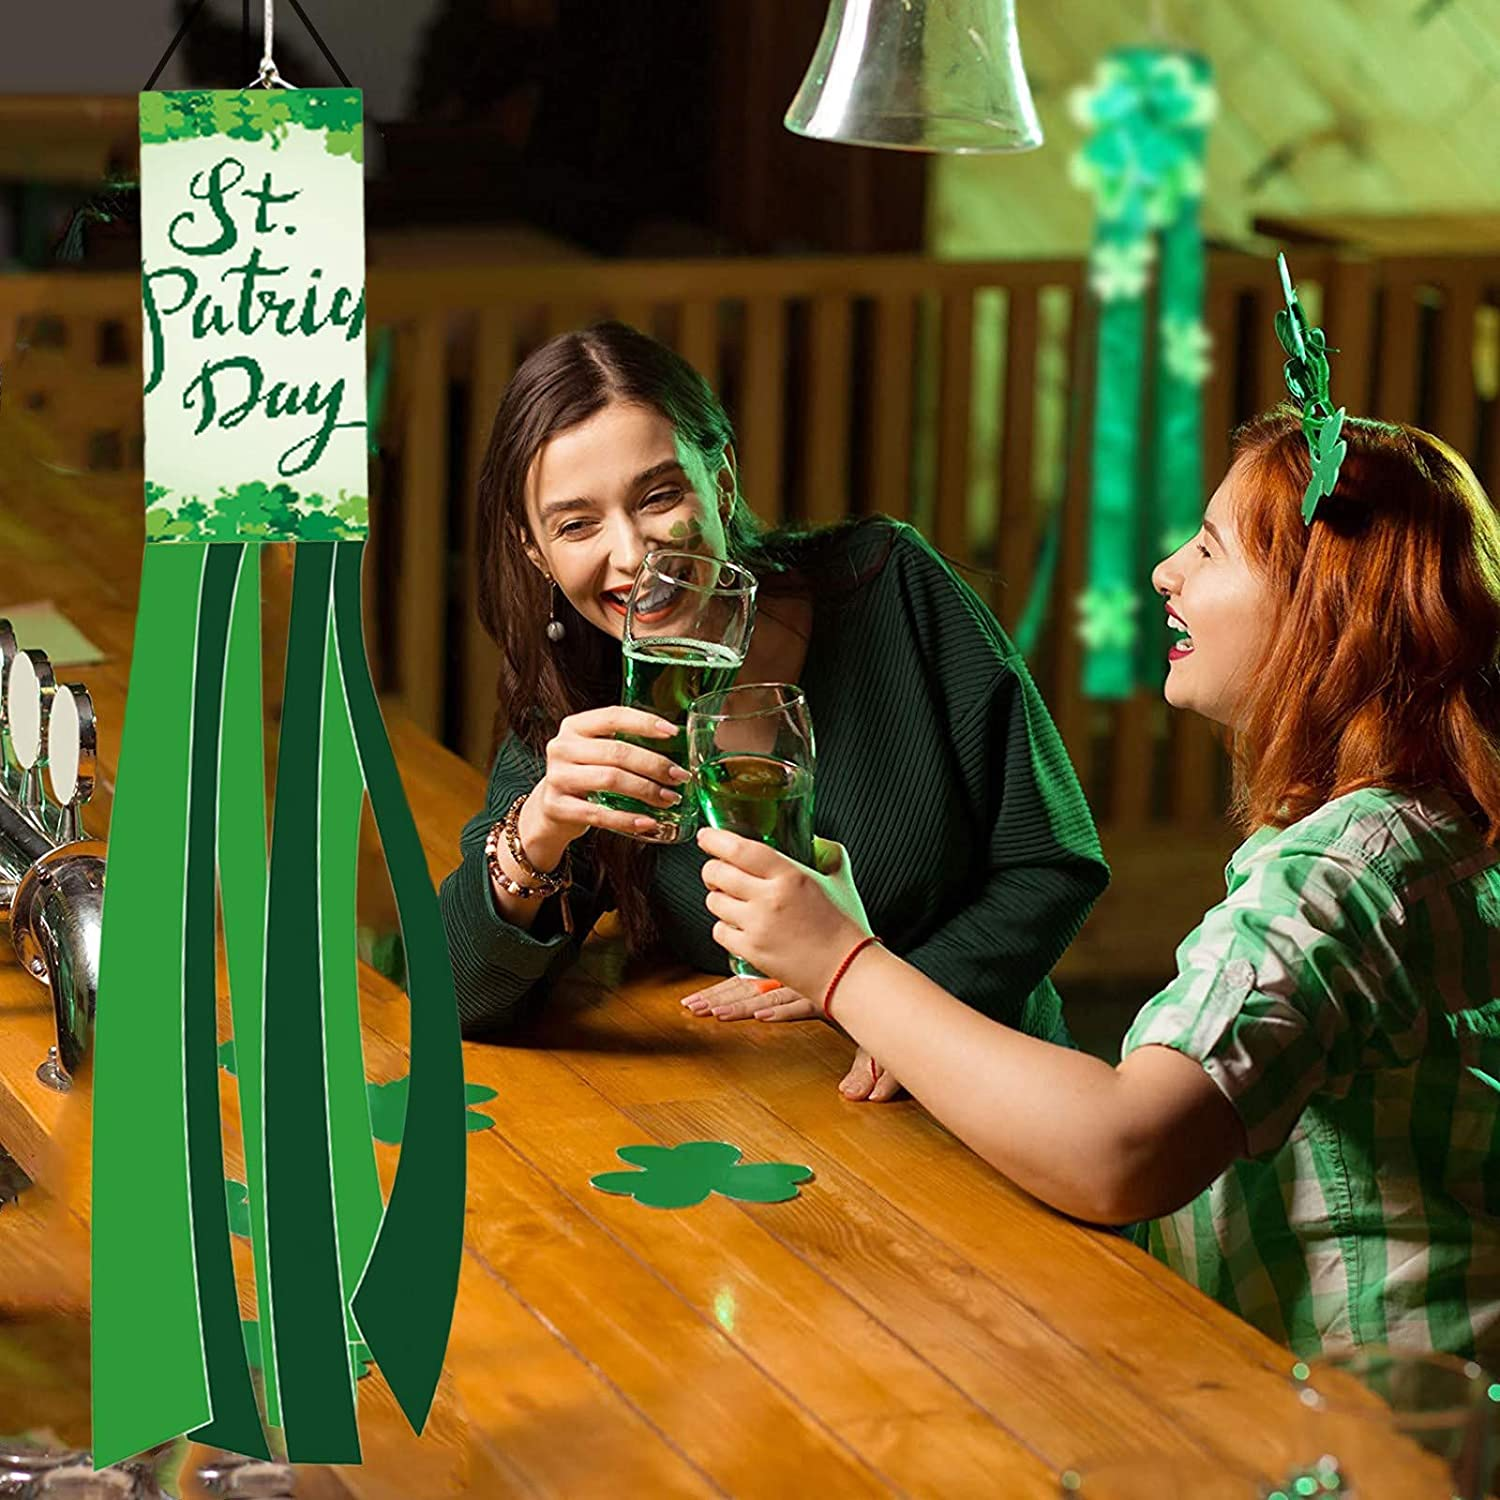 Patricks Day Windsock Polyester Garden Windsock Lawn Garden Party Deco AC1 St